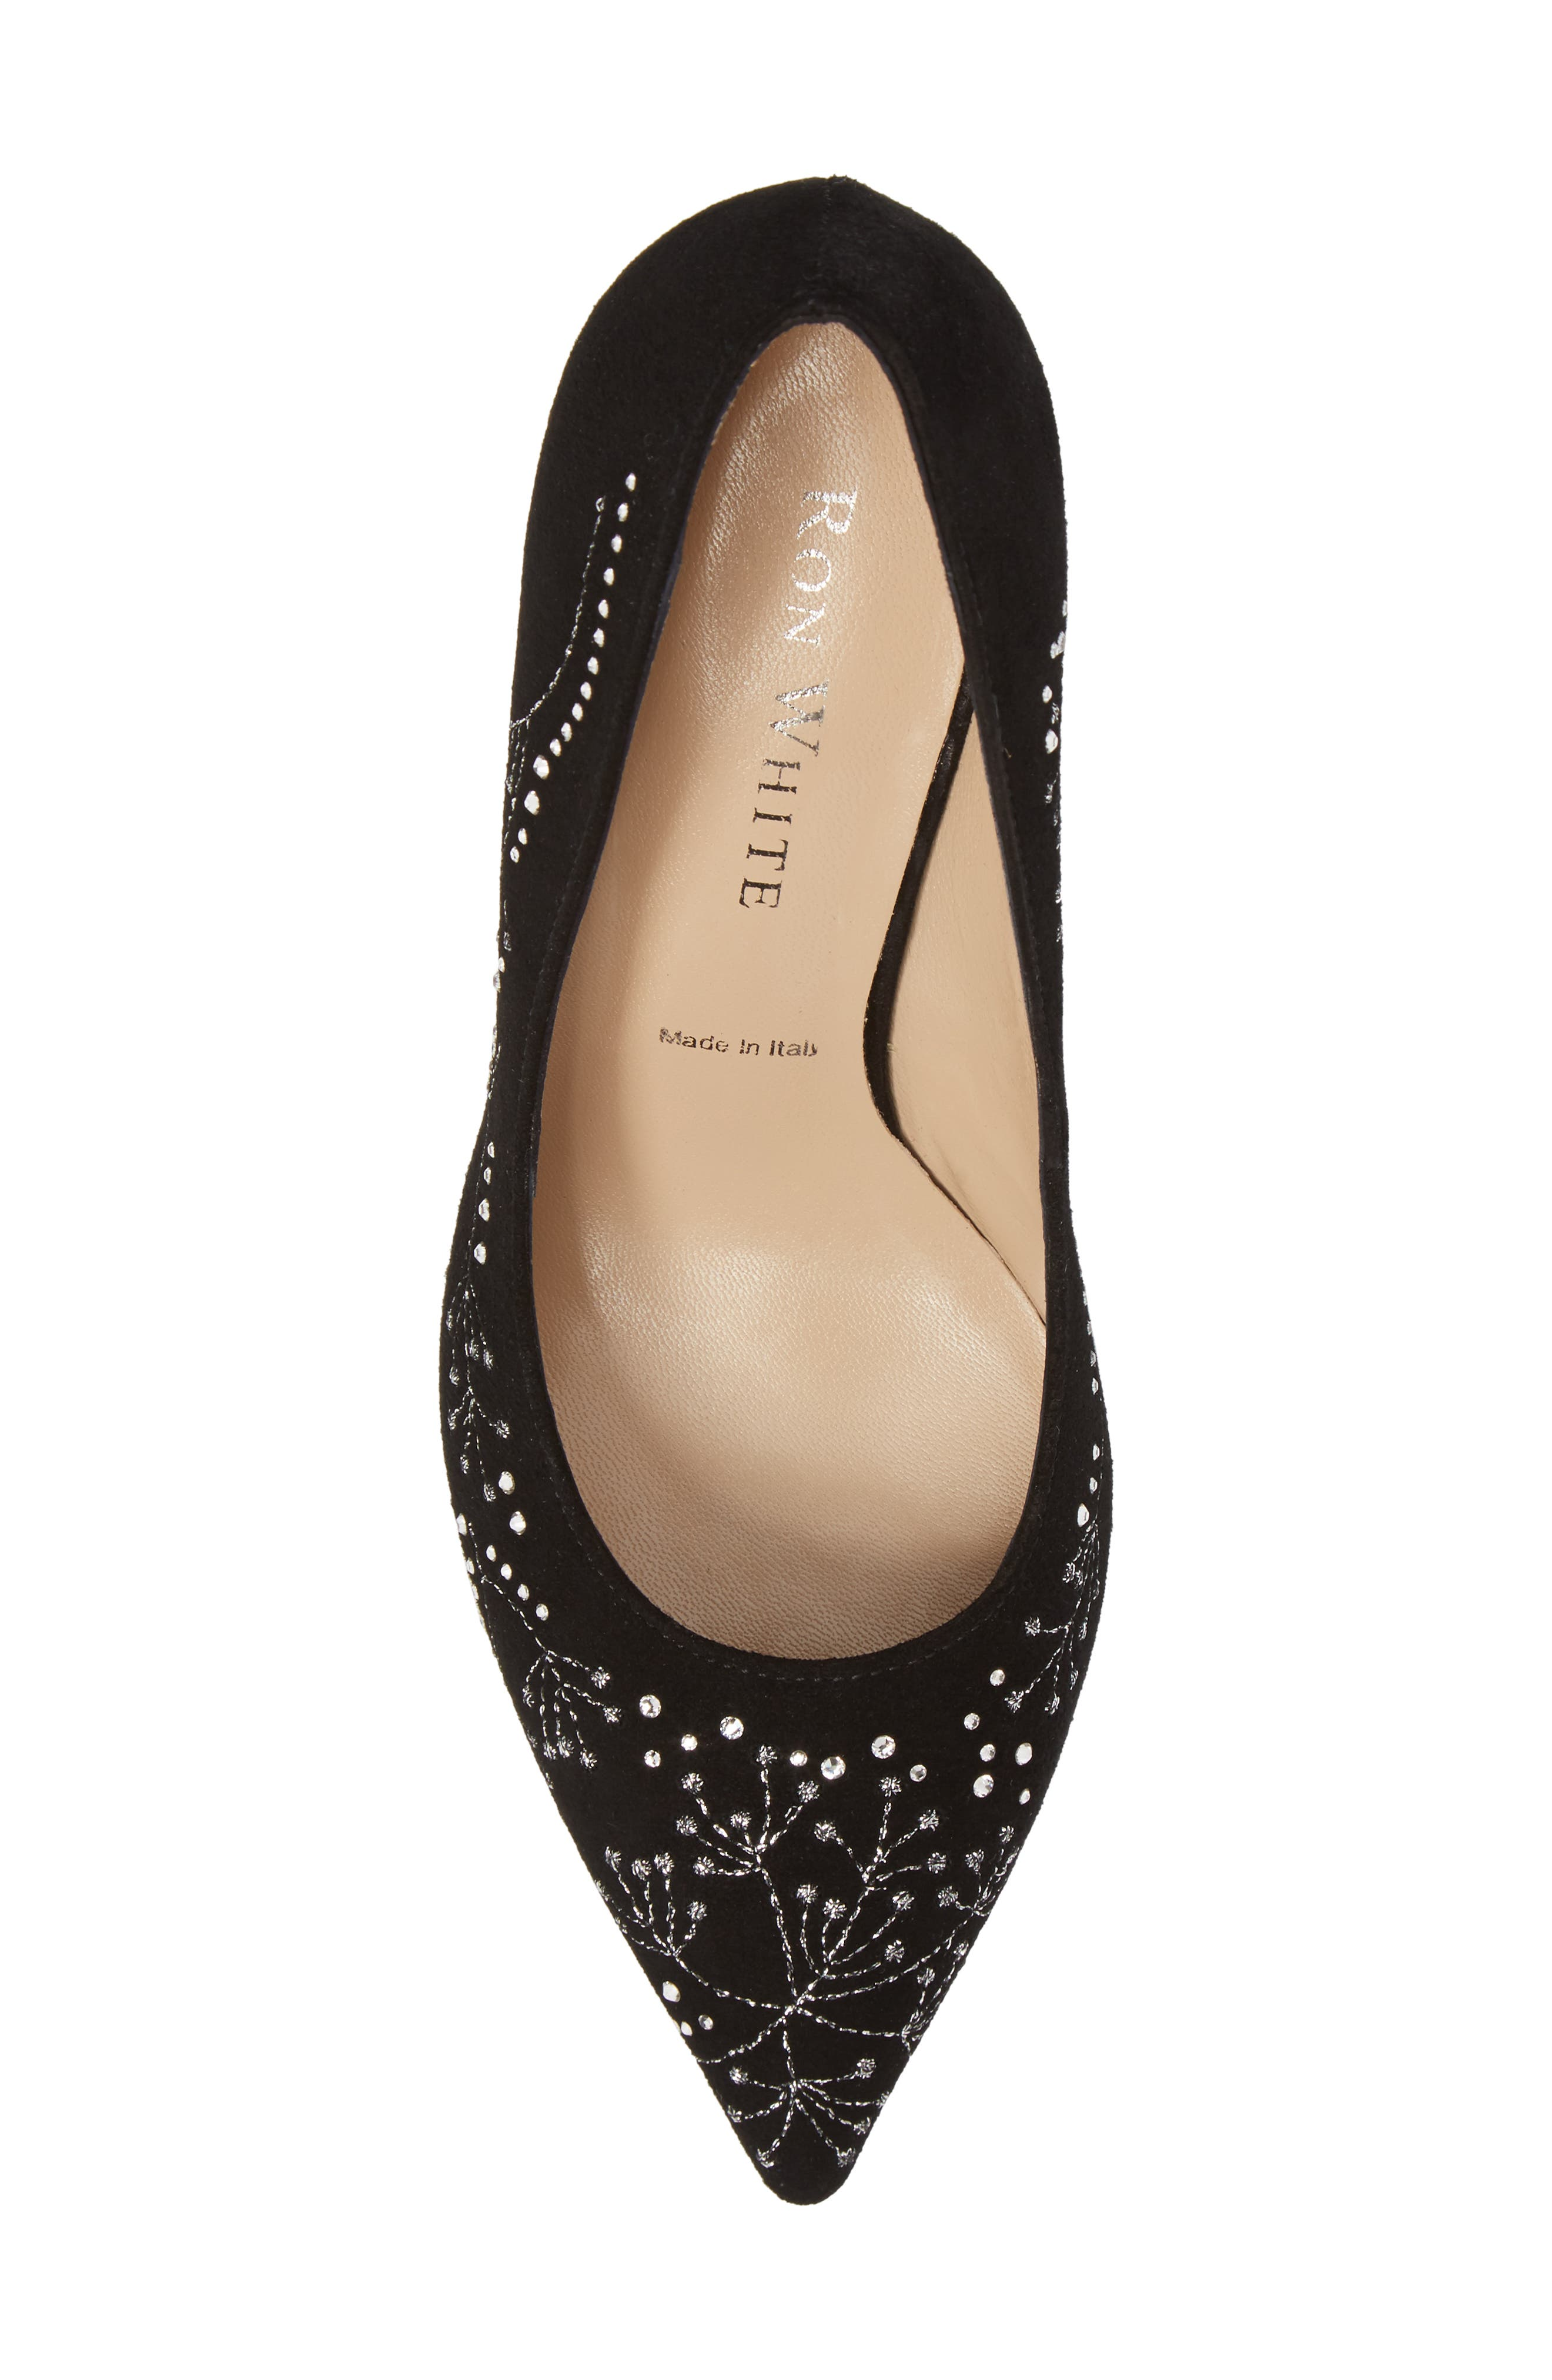 Carla Crystal Embellished Pump,                             Alternate thumbnail 5, color,                             Onyx Suede